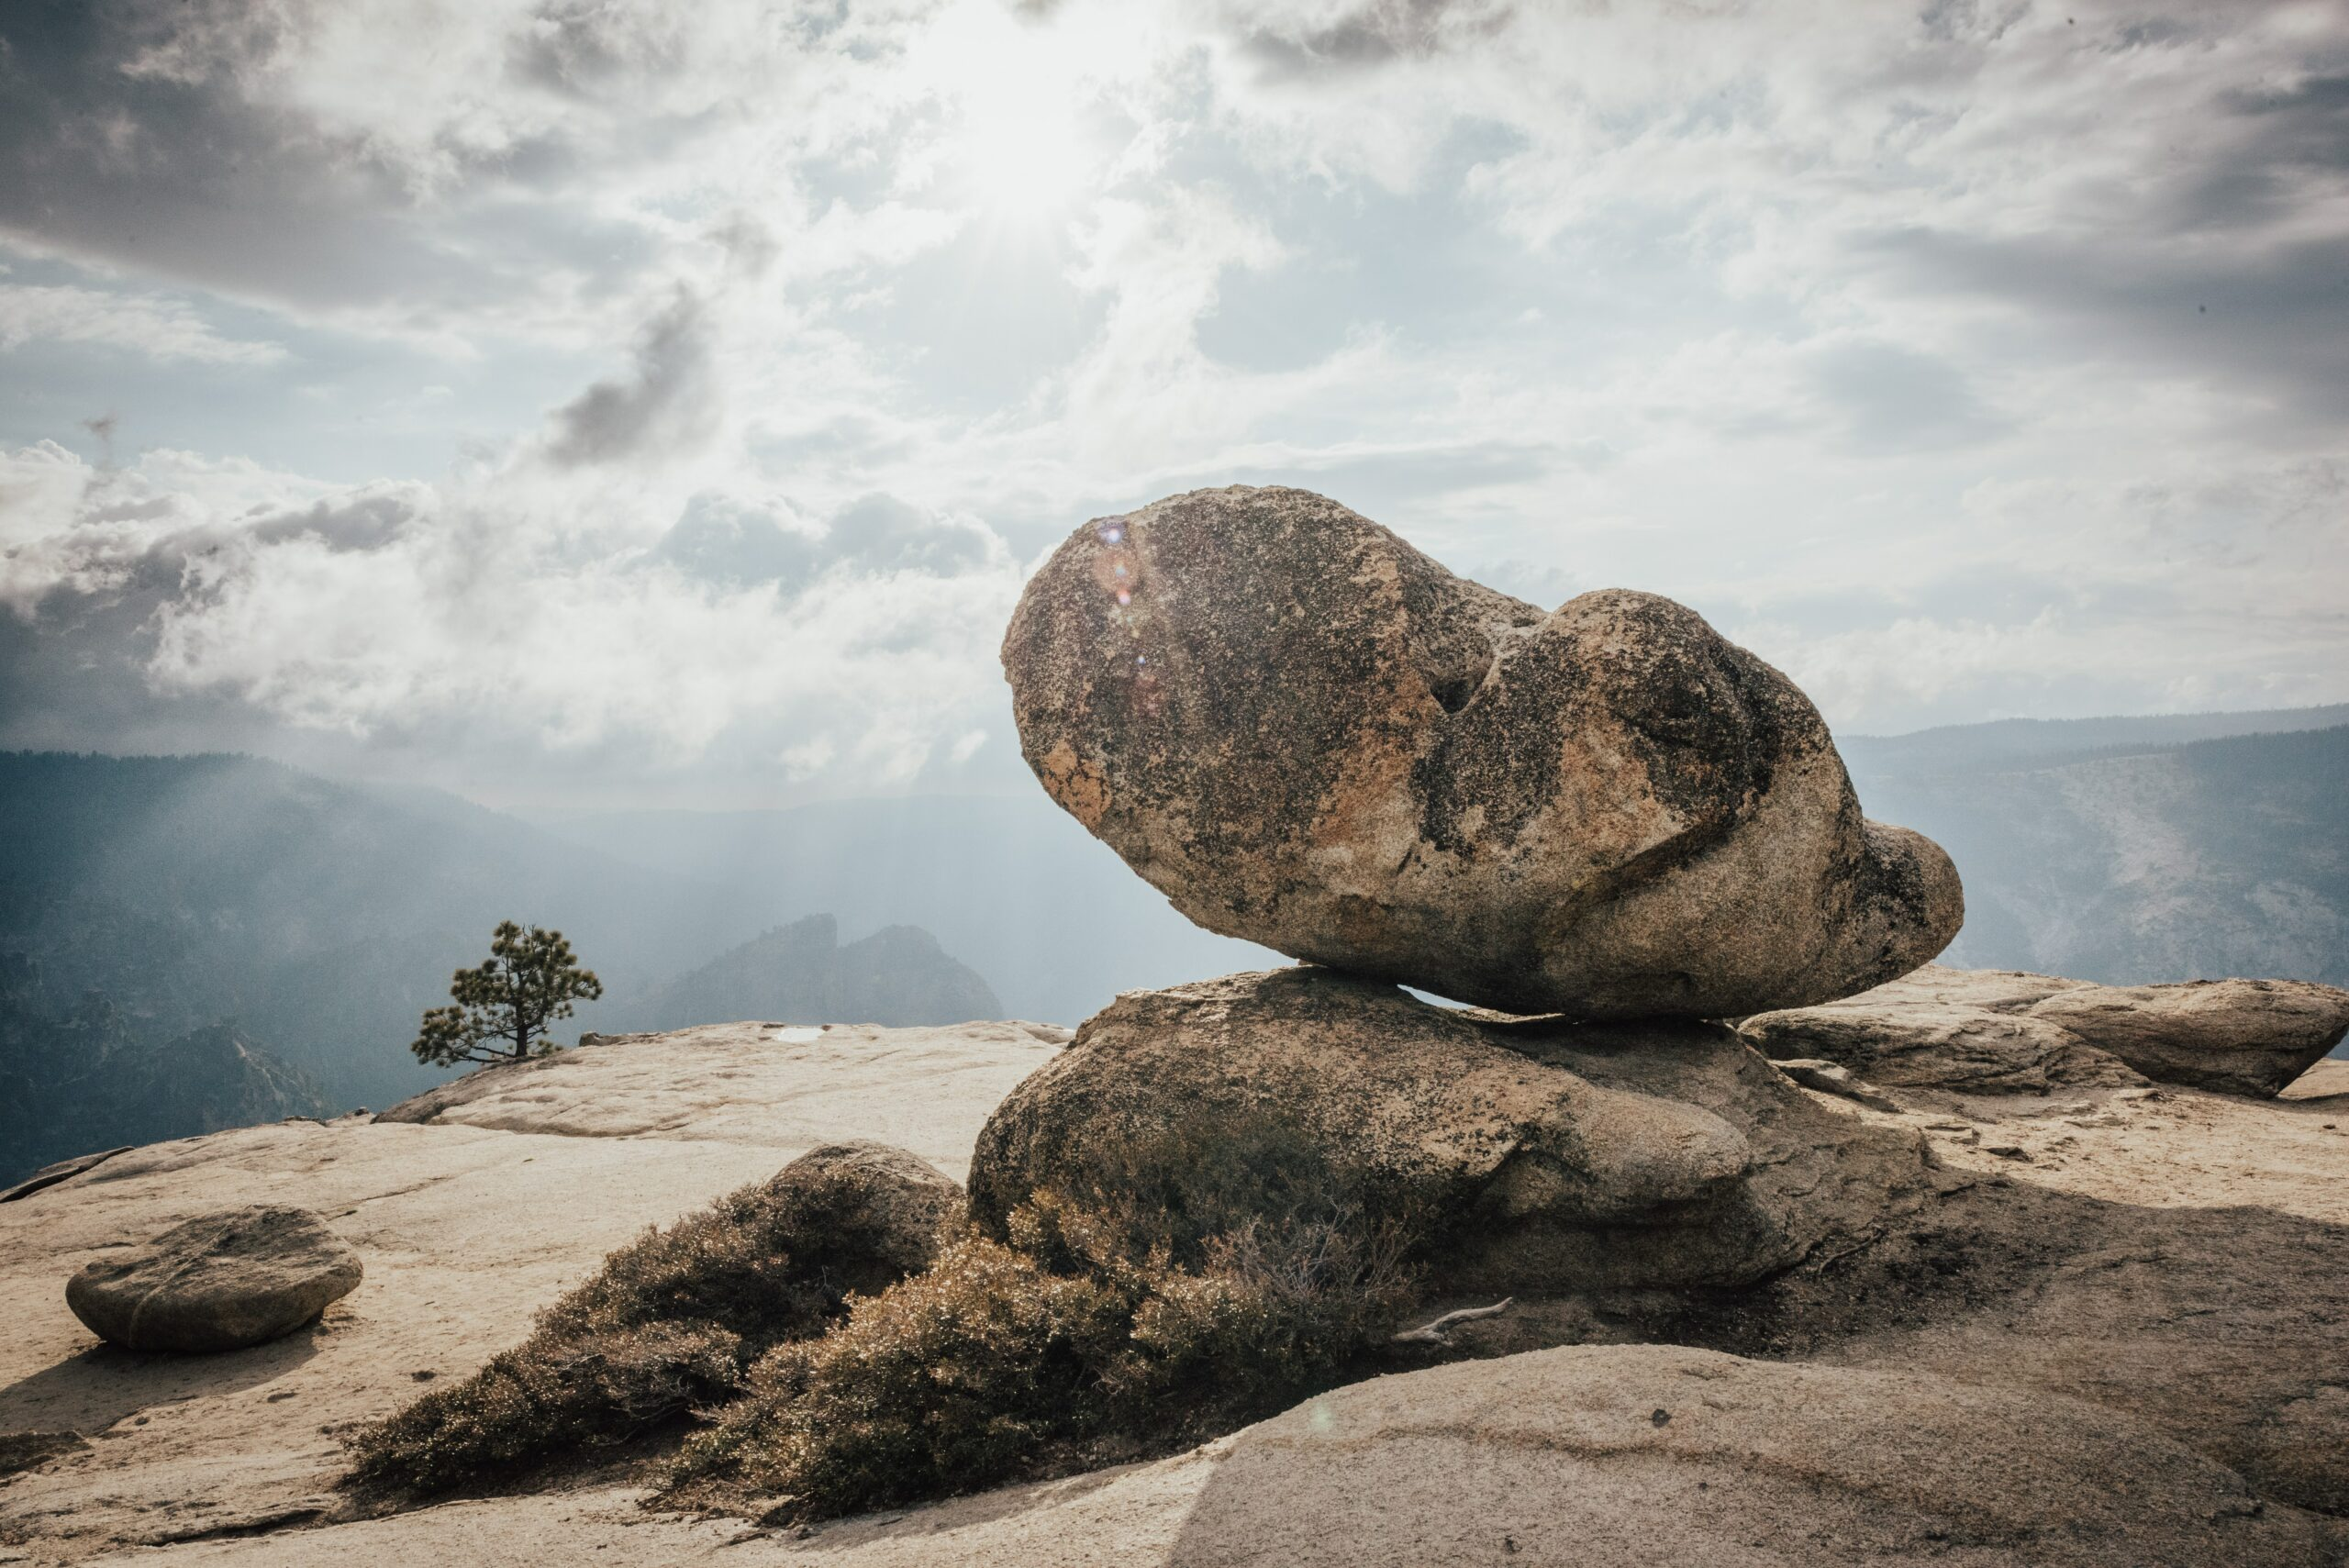 A Rock and Hard Place